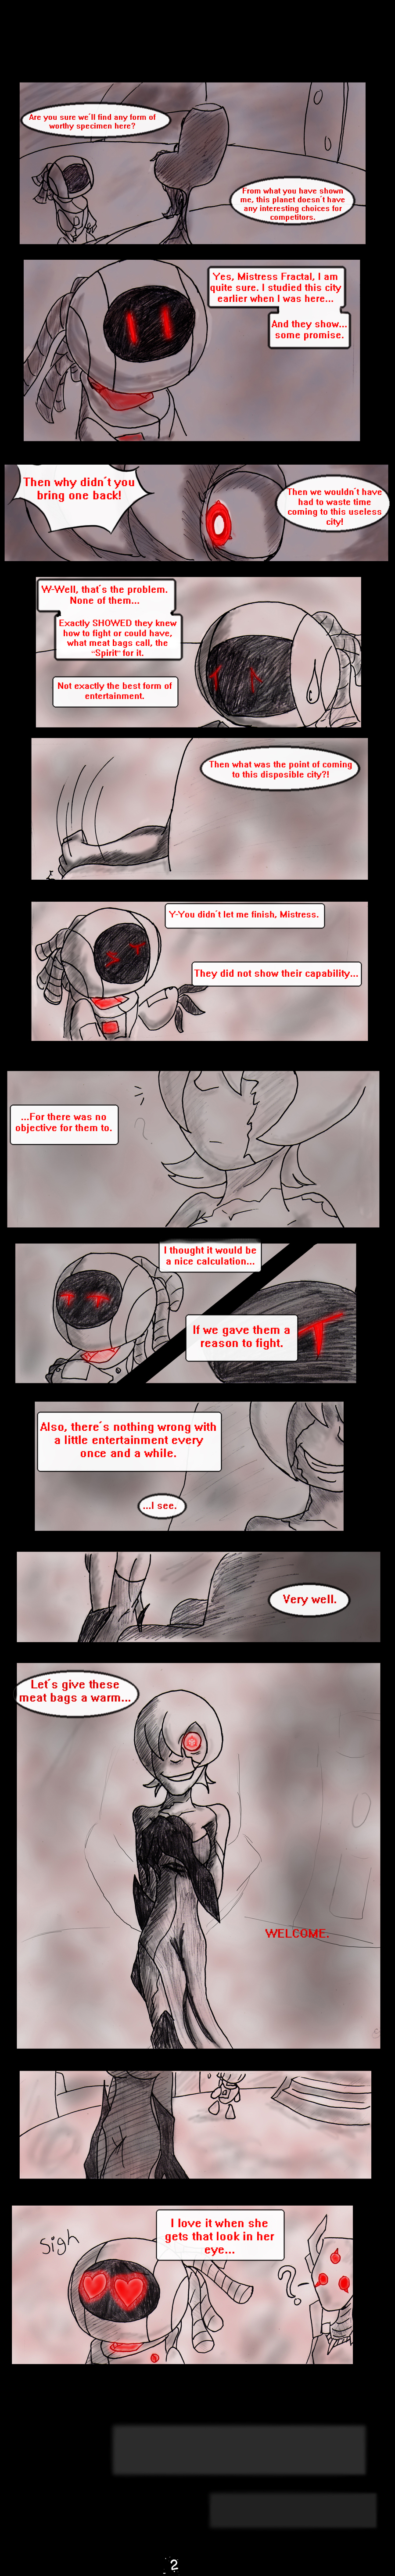 Ebon Spire Audition - Pg 2 by SonicHearts